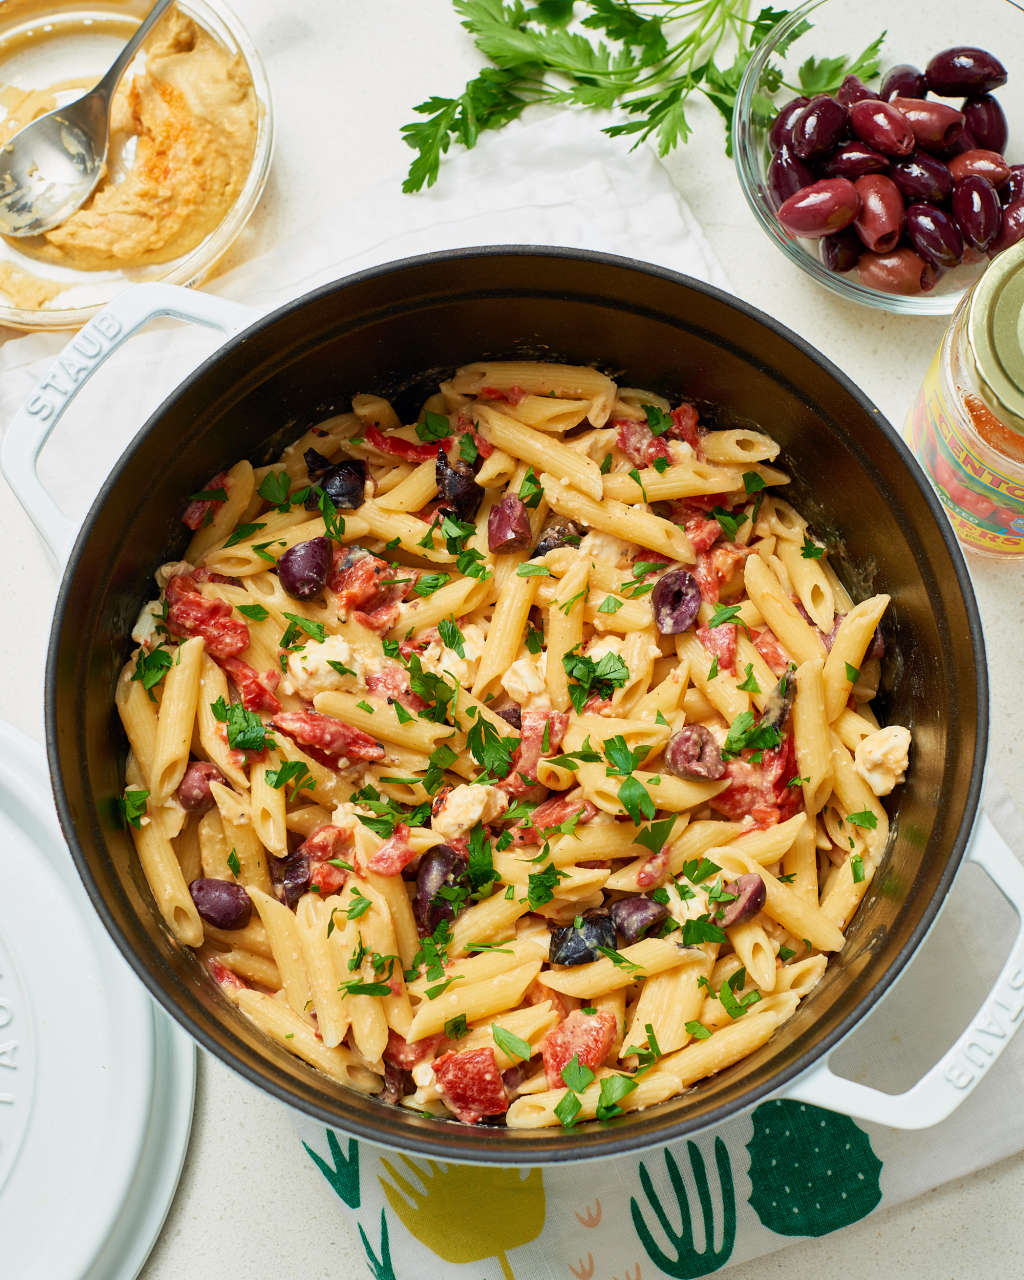 10 Fresh and Filling Pasta Dinner Ideas